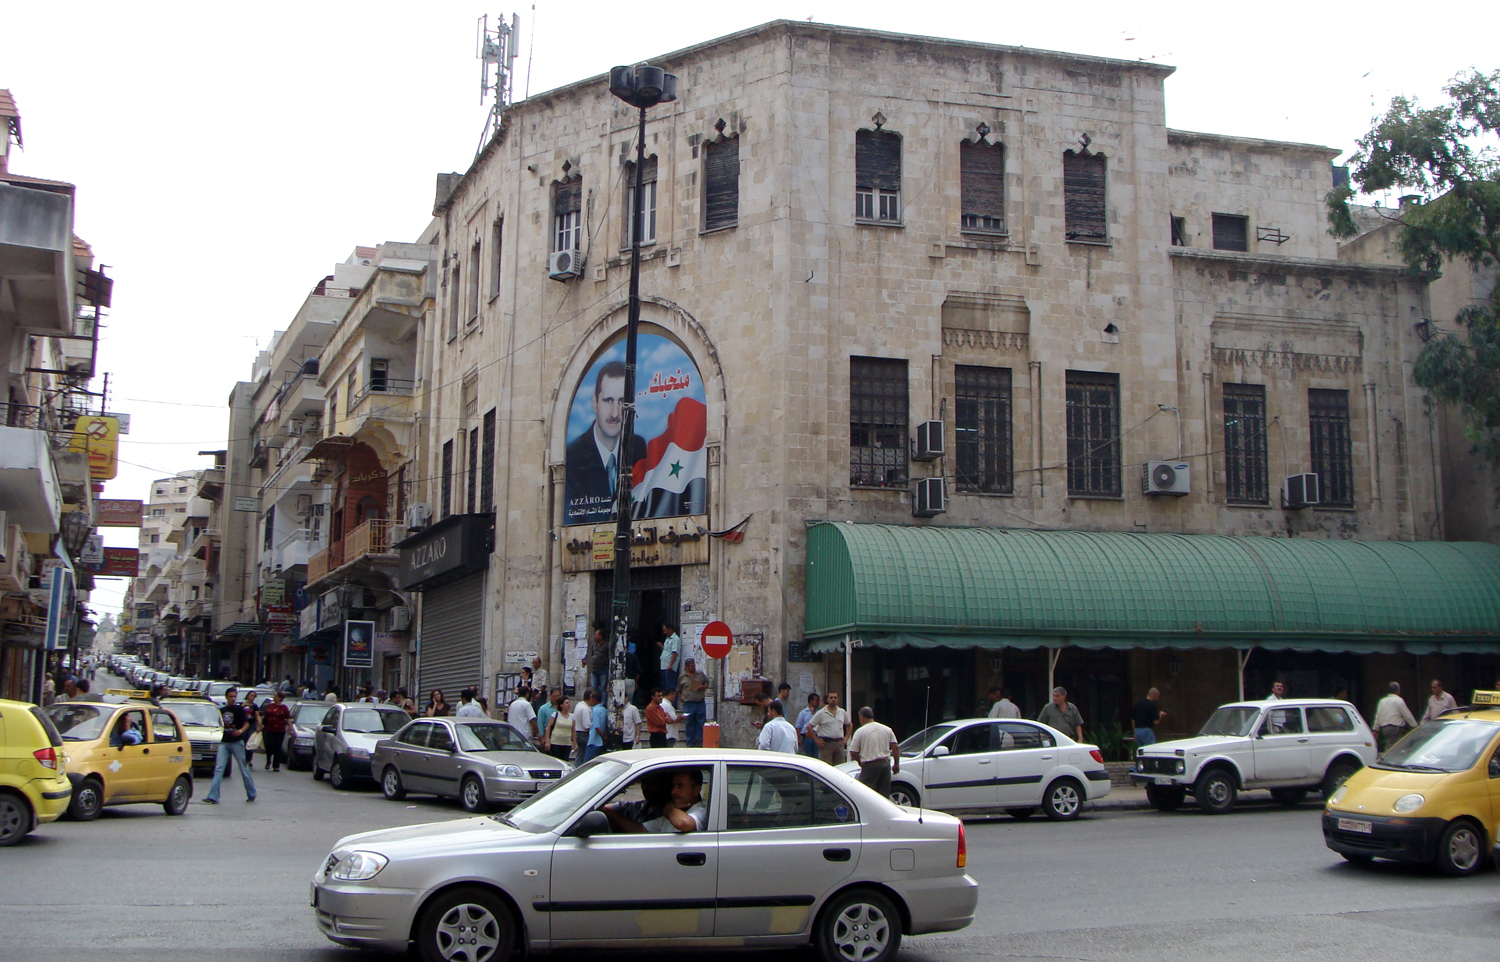 Street in Latakia with the image of the country's leader, Basar al-Assad.